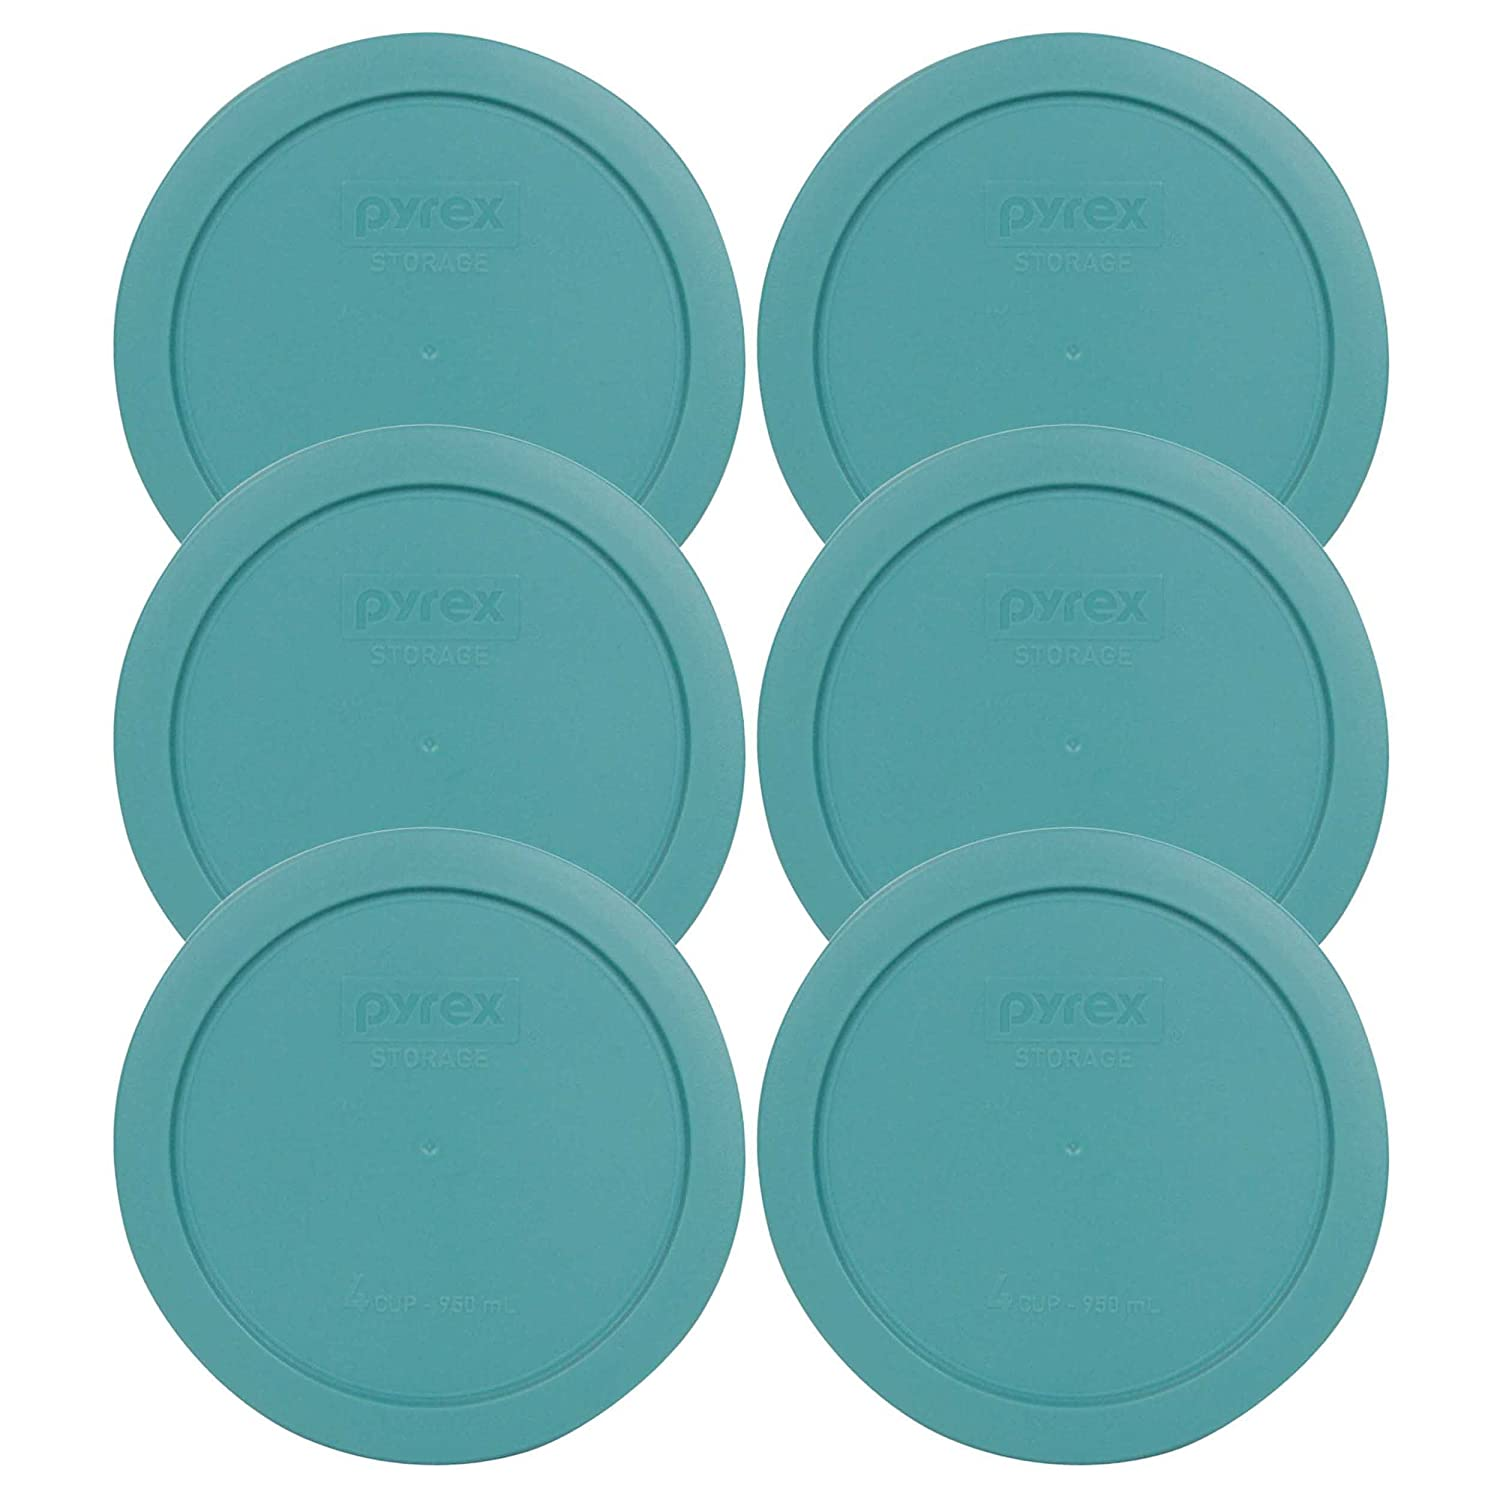 Pyrex Bondi 4 Cup Round Plastic Cover #7201-PC (container not included) by Pyrex